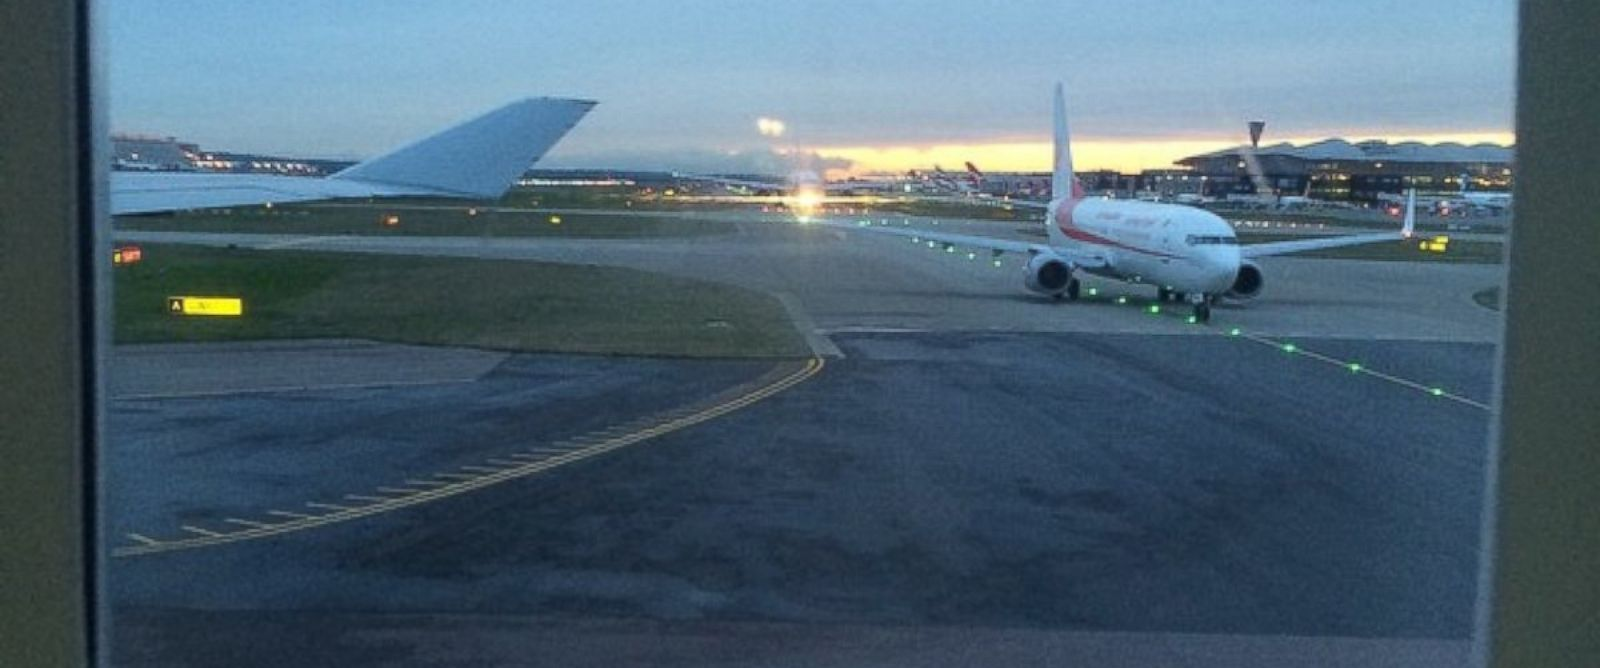 """PHOTO: An Instgram user posted this photo on Dec. 12, 2014 with the caption, """"All planes queued up on the runway at #heathrow #NATS #failure #airtrafficcontrol #breakingnews #gutted."""""""